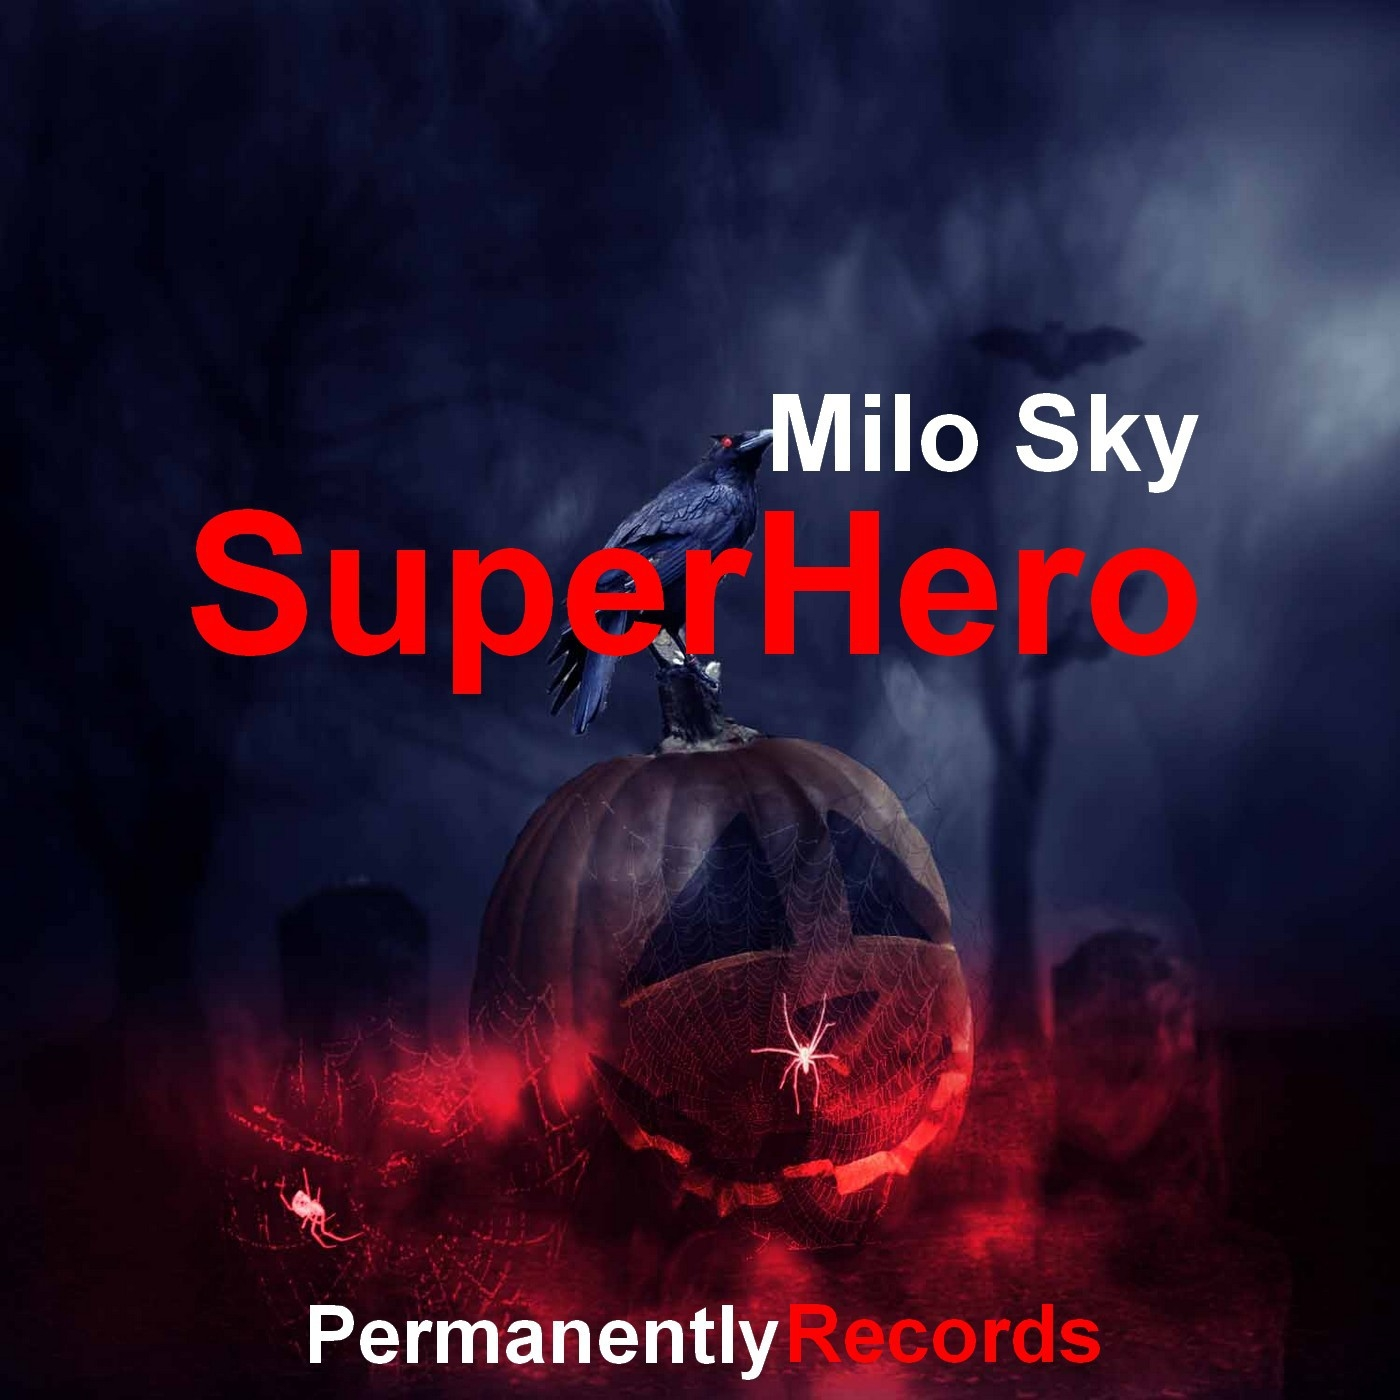 Milo Sky - SuperHero (Original mix)